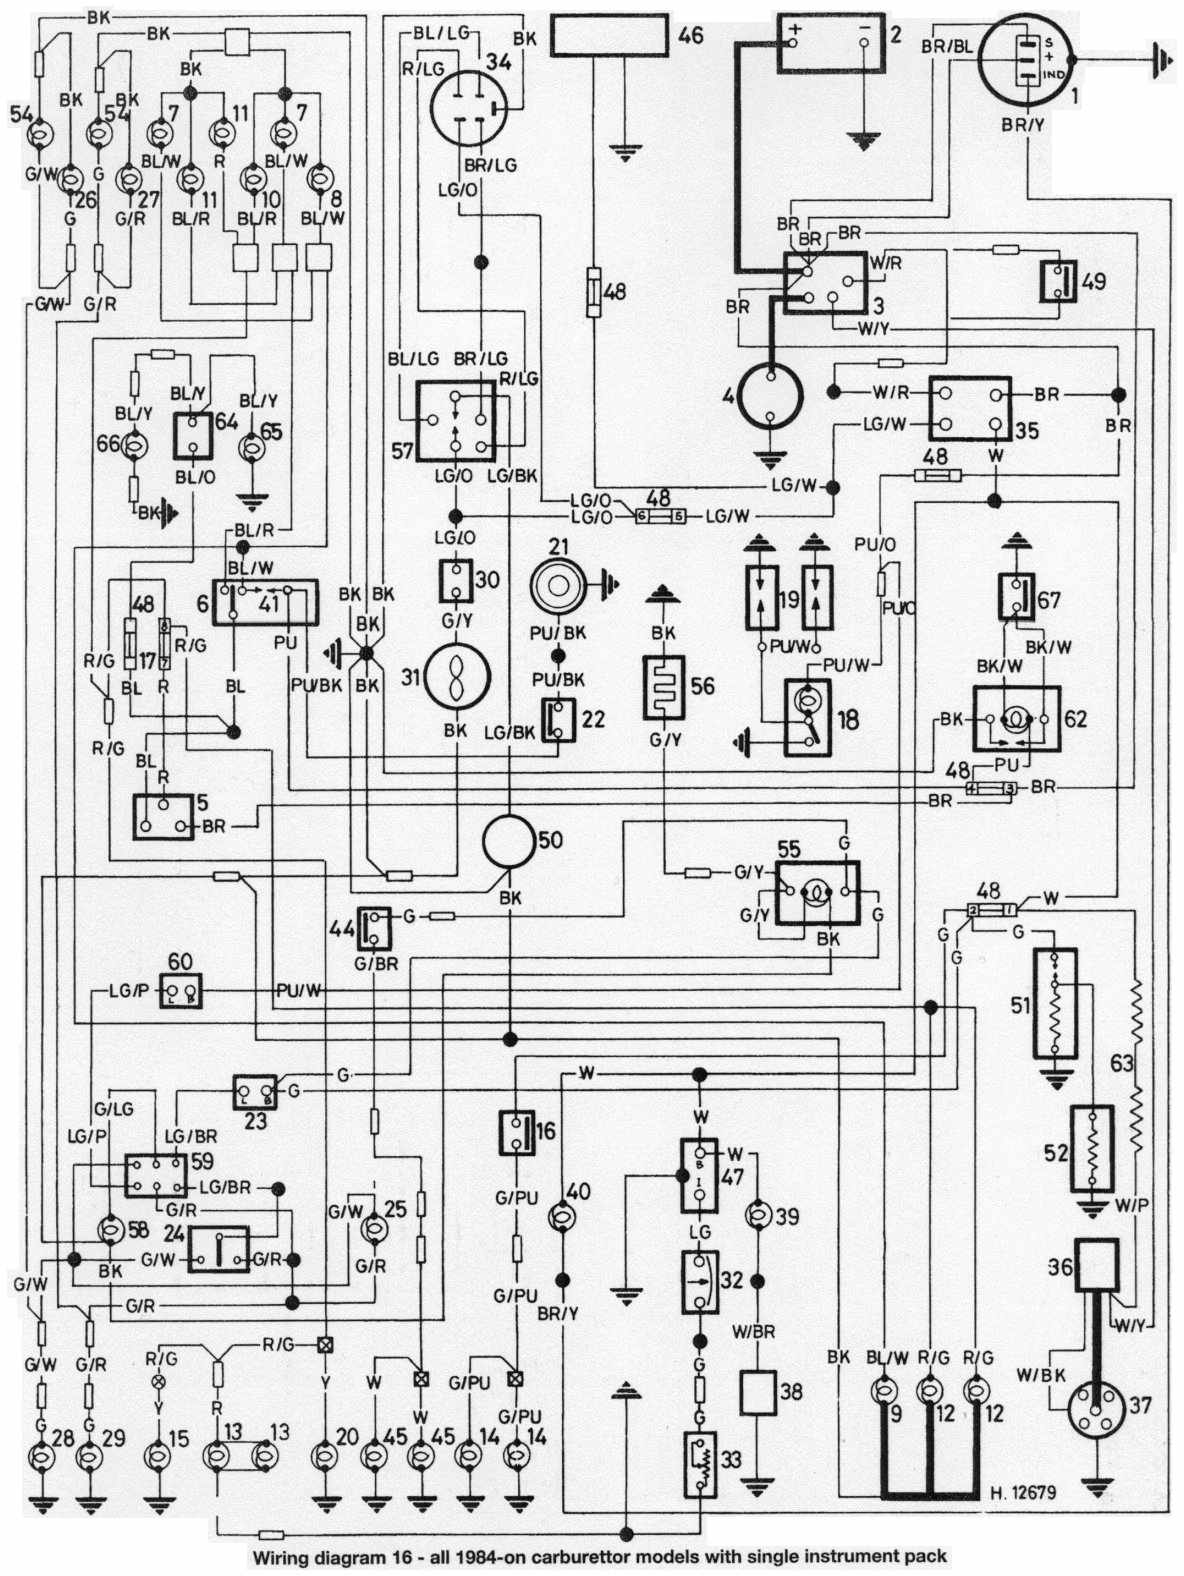 1985 Austin Mini Wiring Diagram Wiring Diagram